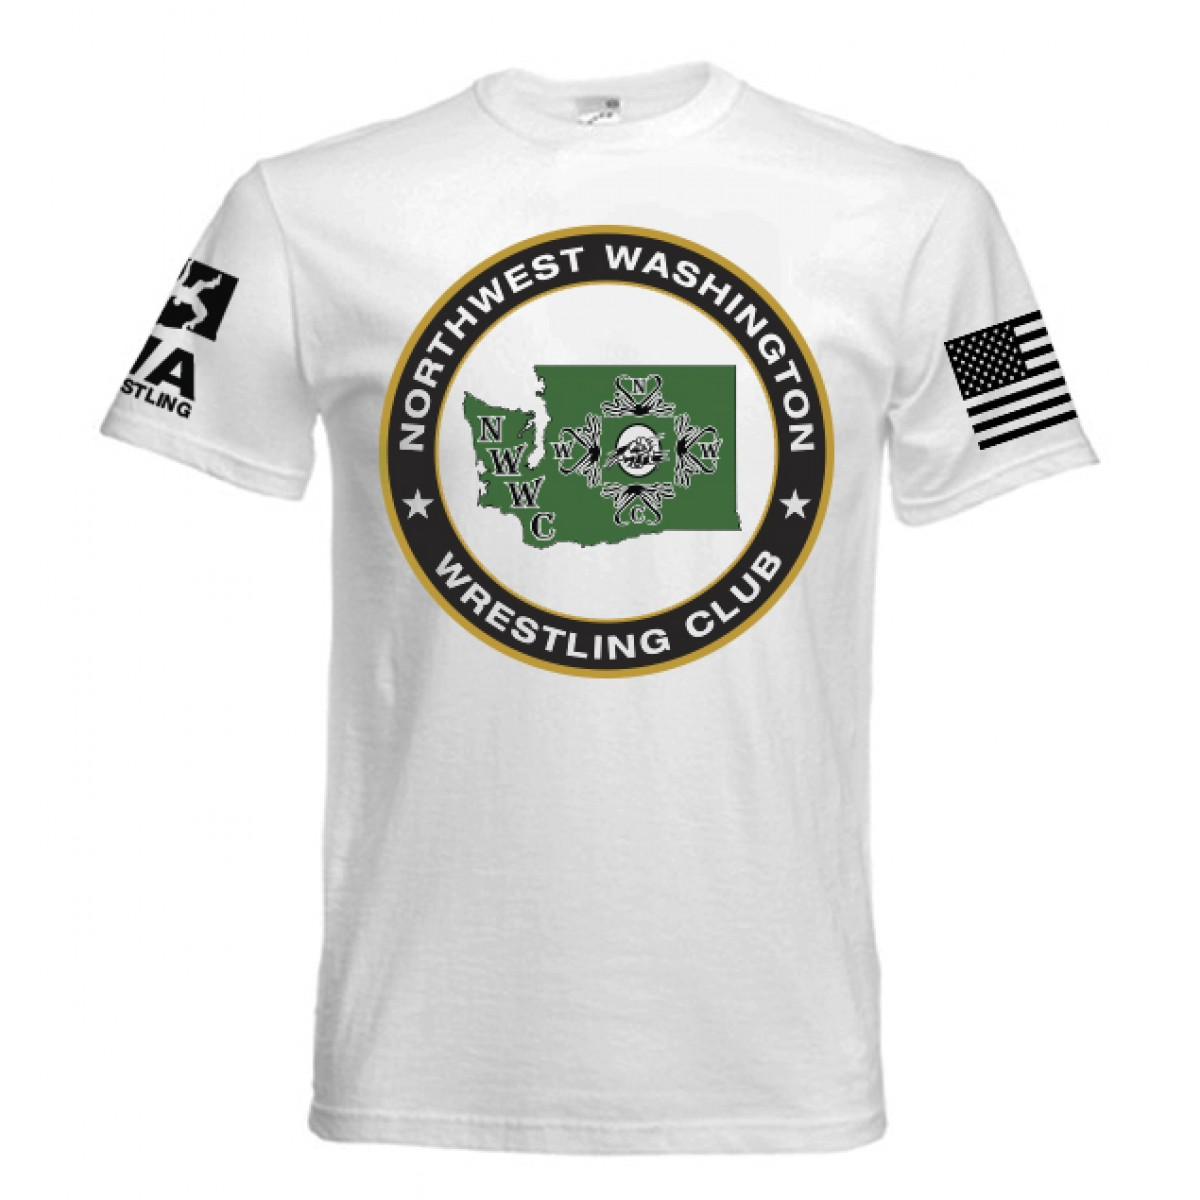 NWWC White T-shirt Green Logo-White-2XL